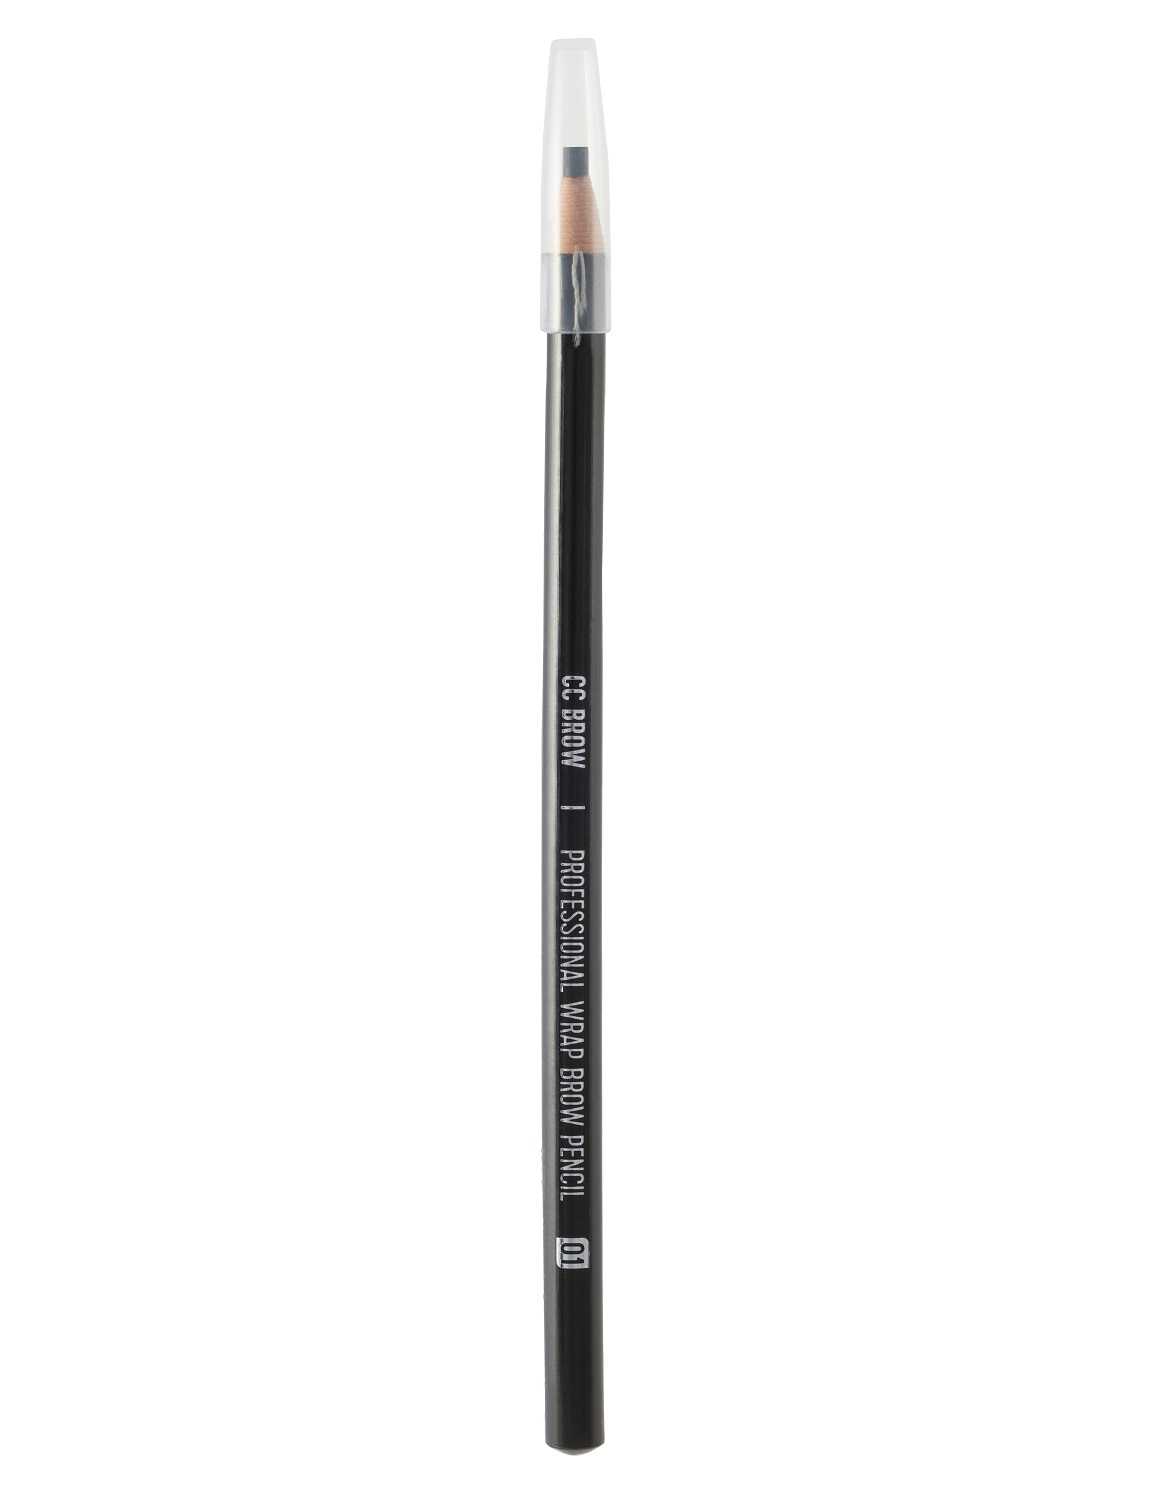 Карандаш для бровей чёрный Lucas Cosmetics CC Brow Wrap Brow Pencil Black тон 01